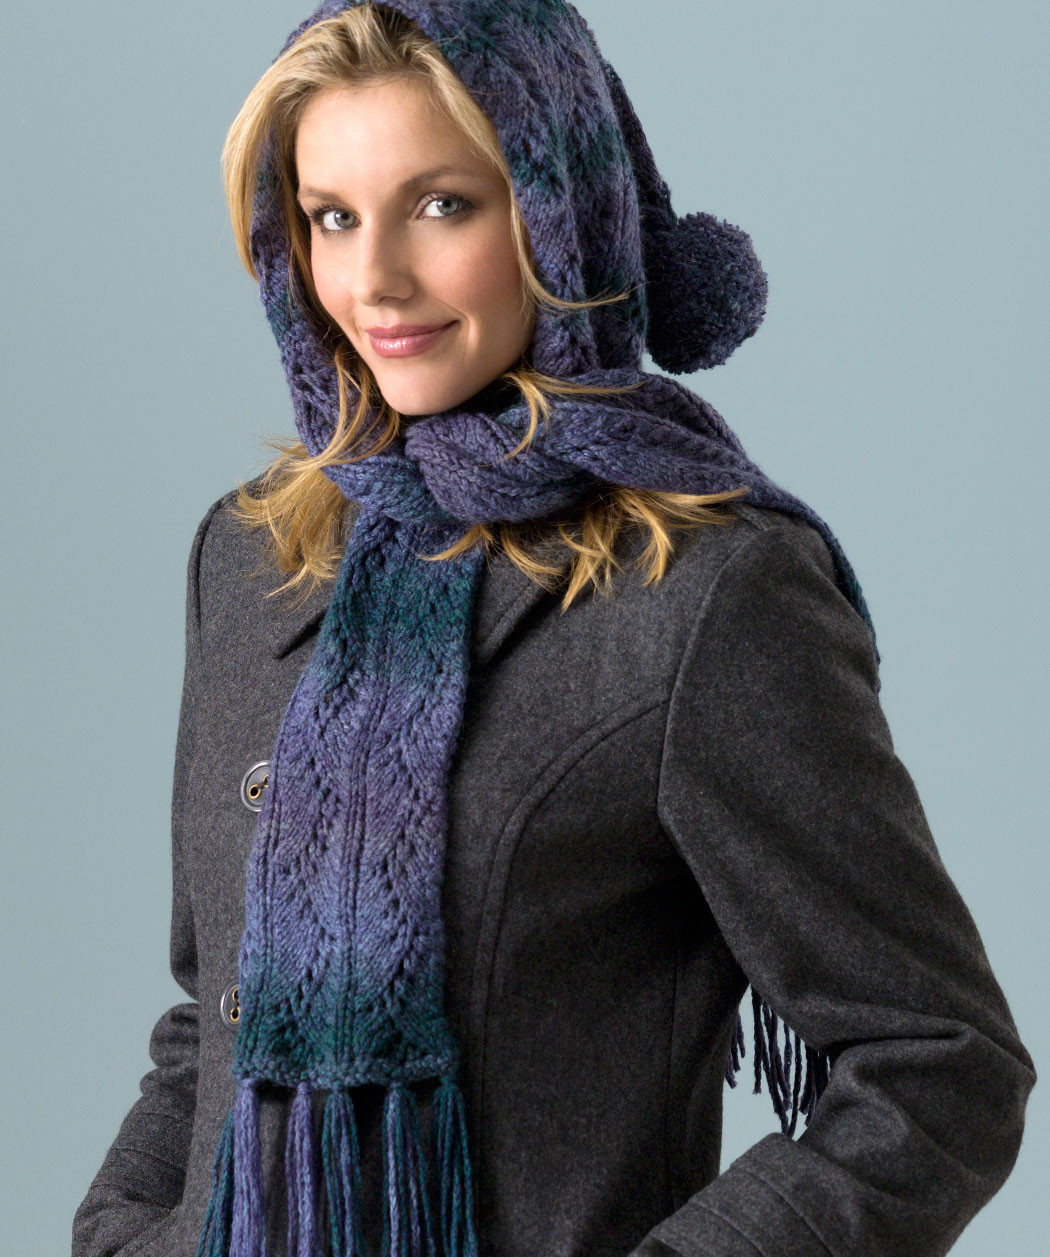 Best Of Hooded Scarf Knitting Pattern Hooded Scarf Pattern Of Brilliant 43 Pics Hooded Scarf Pattern